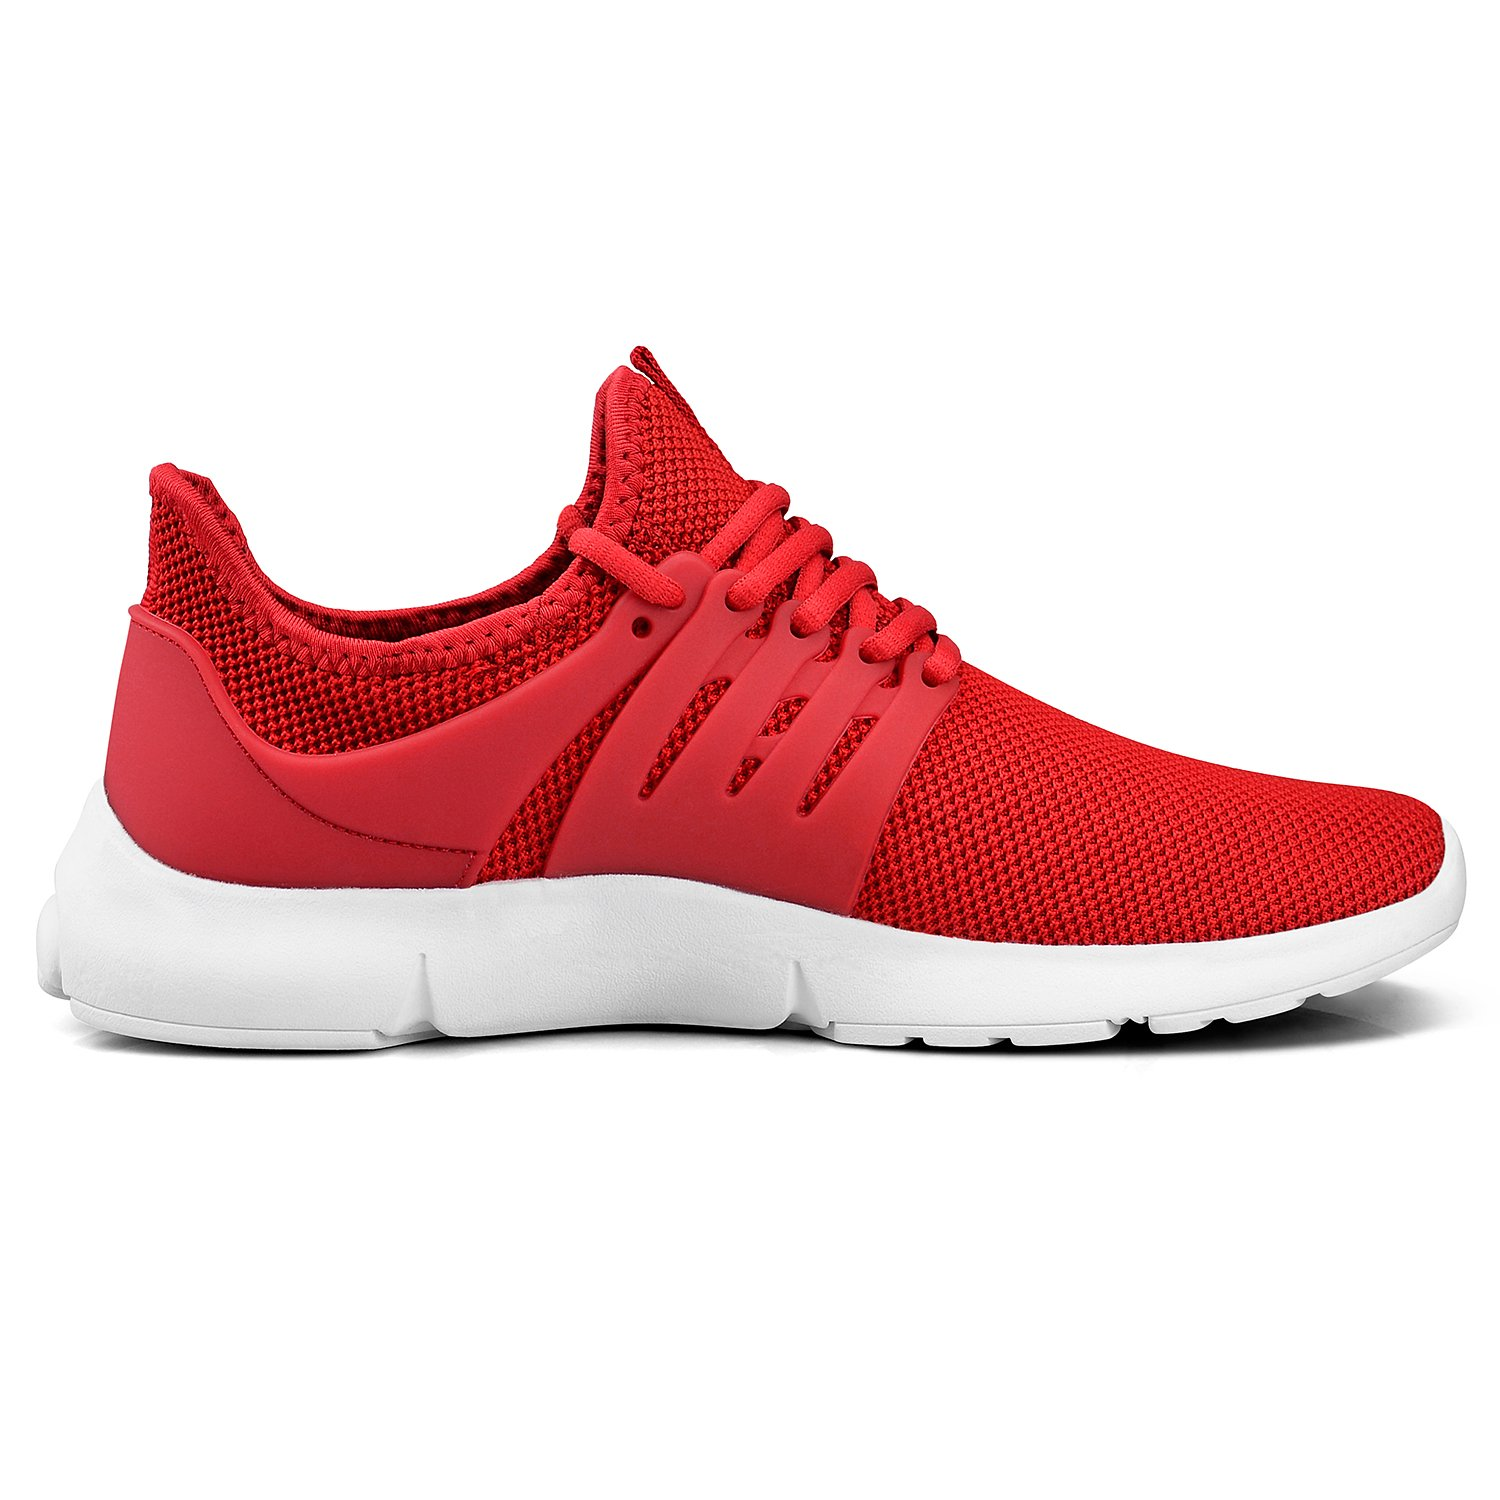 Troadlop Womens Running Sneakers Ultra Lightweight Breathable Mesh Walking Athletic Shoes(Size 5.5-13 US) B07D3XMYQ5 9 M US|Red/White